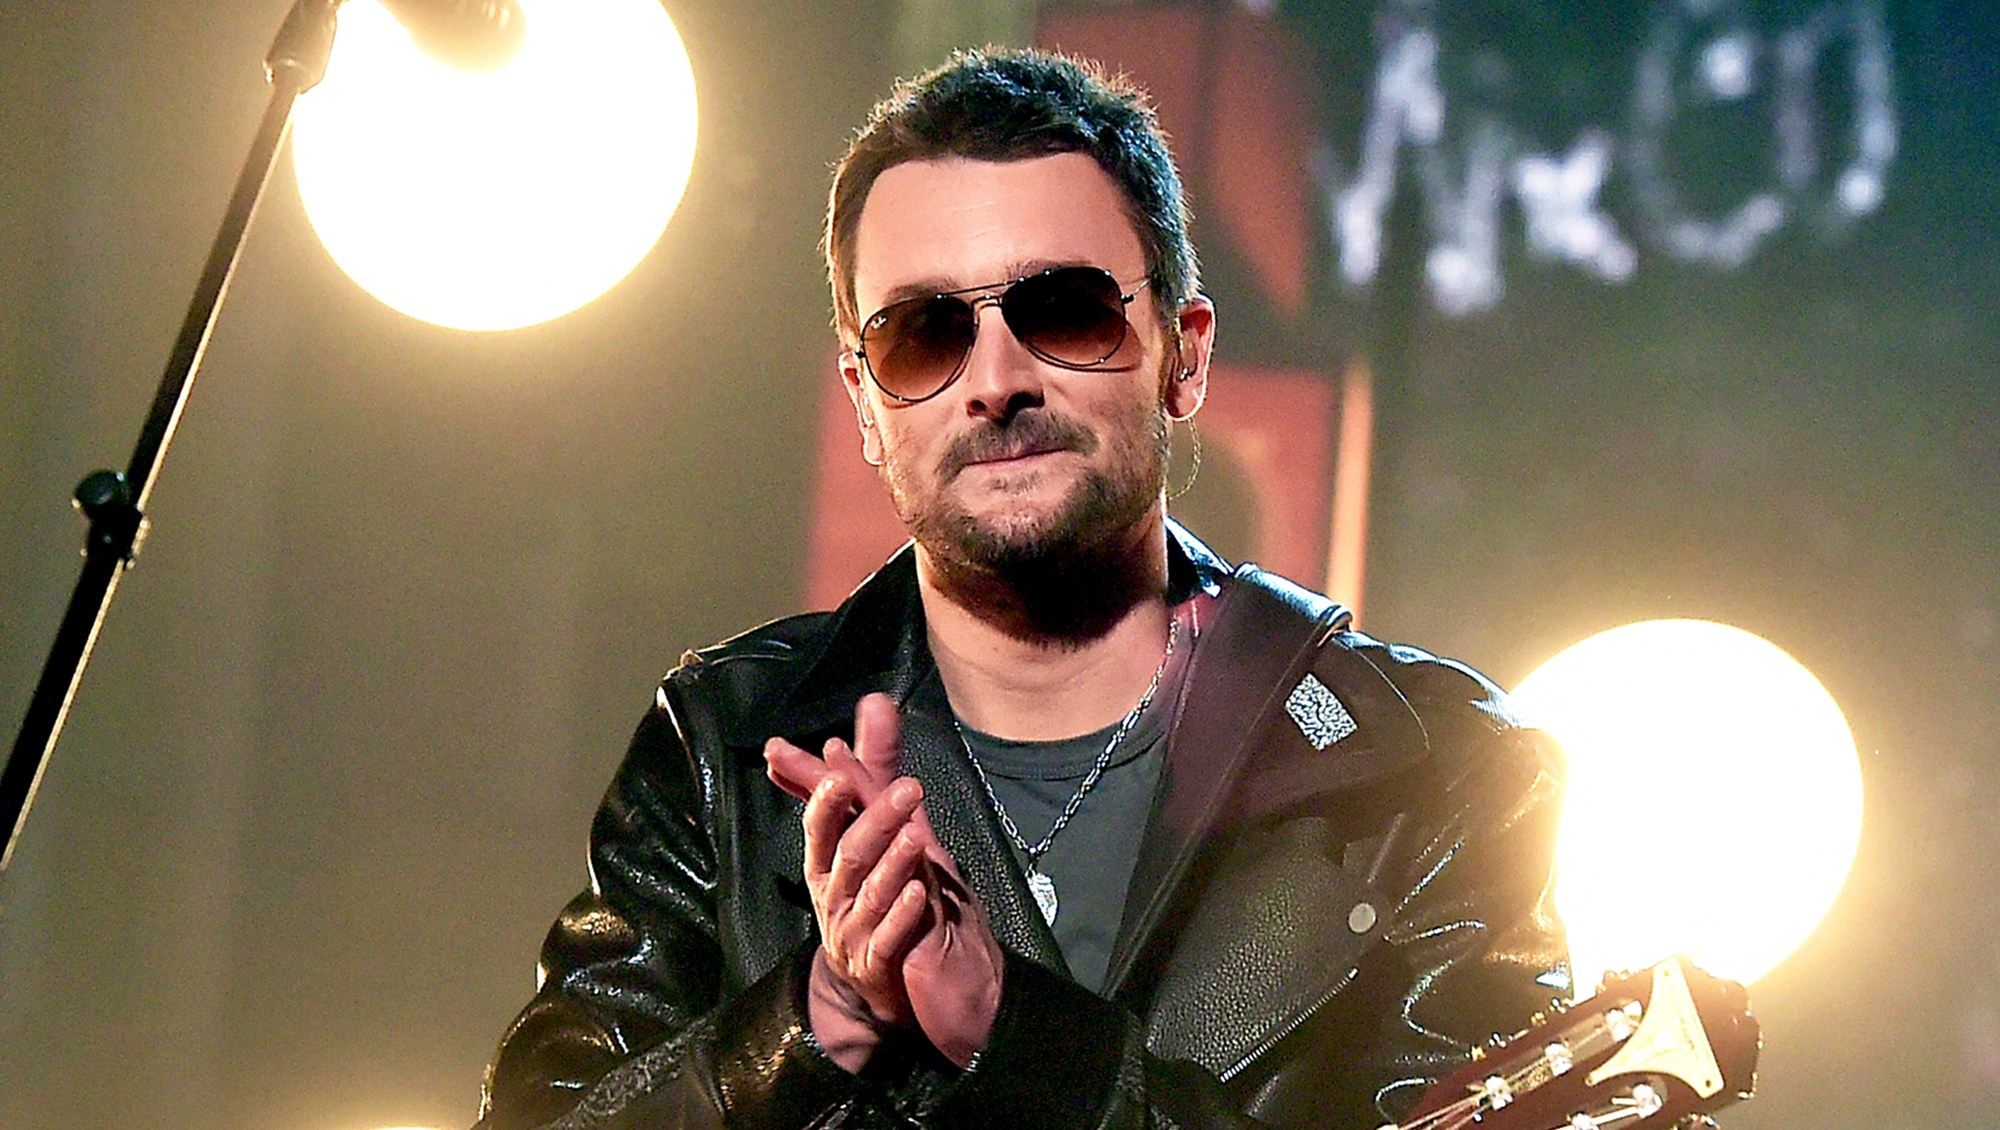 Eric Church performs onstage during the 51st Academy of Country Music Awards at MGM Grand Garden Arena in Las Vegas, Nevada.